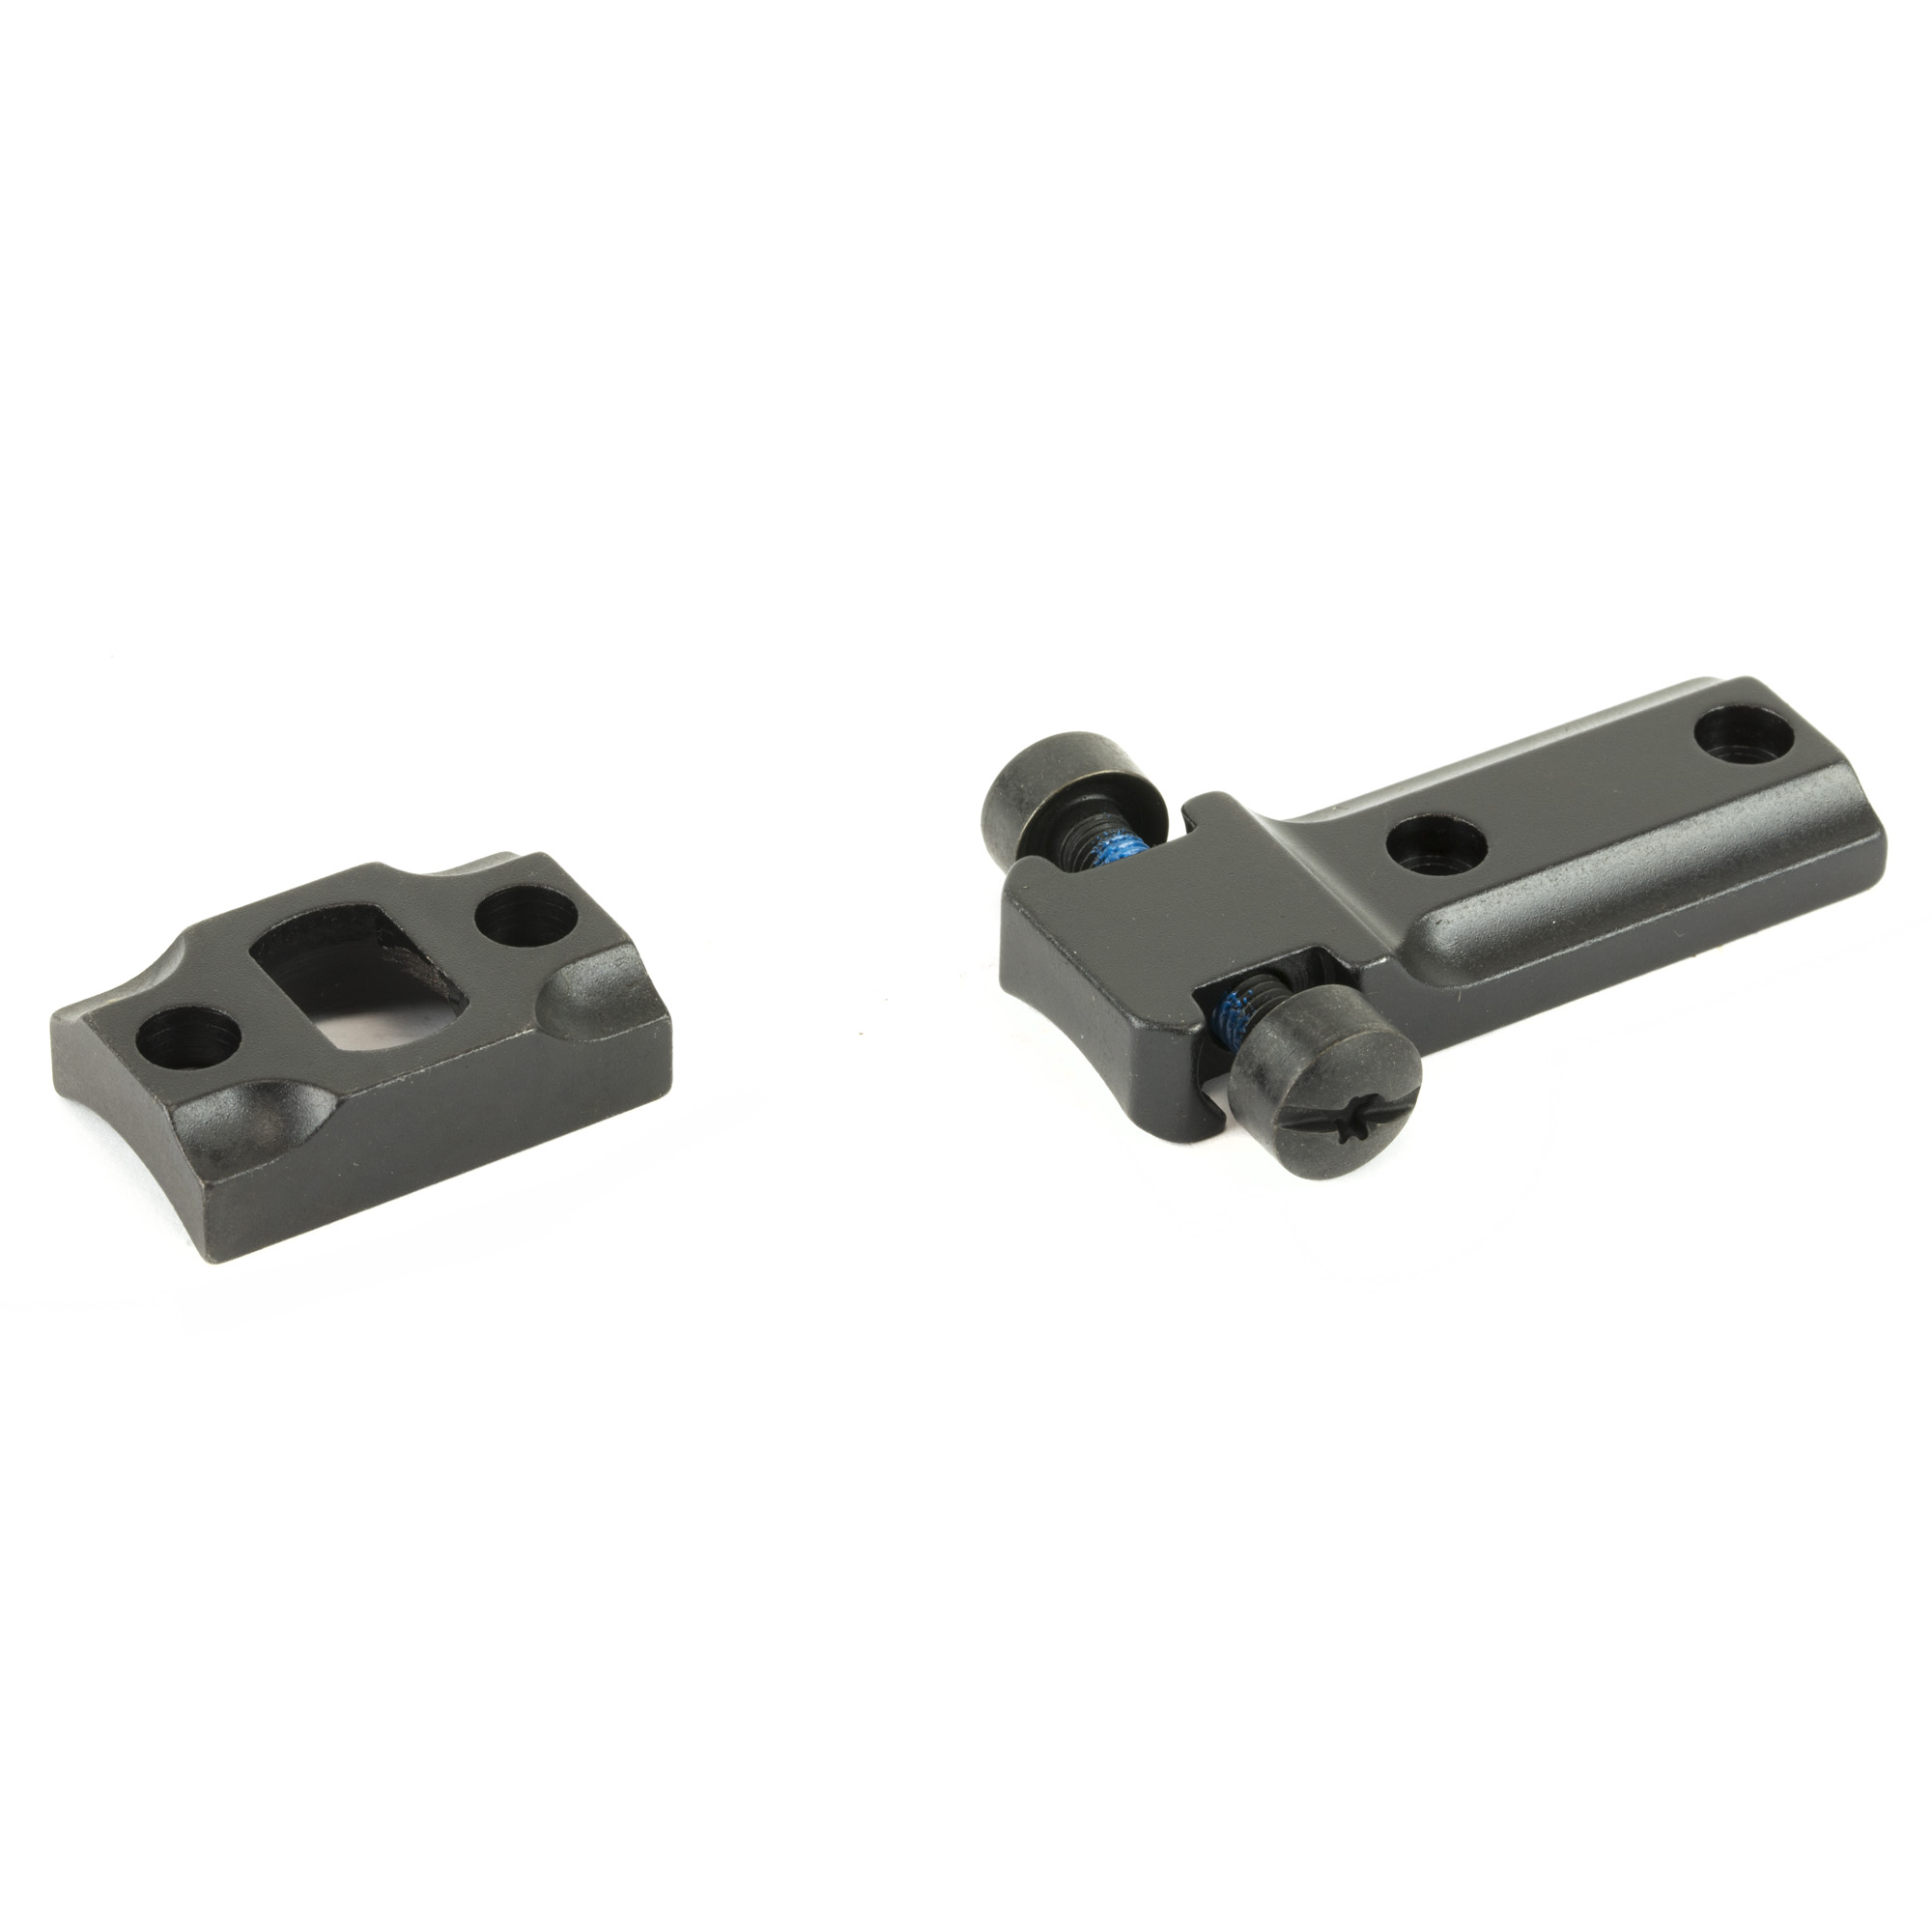 Standard Ruger American 2 piece base mounts made by Leupold.